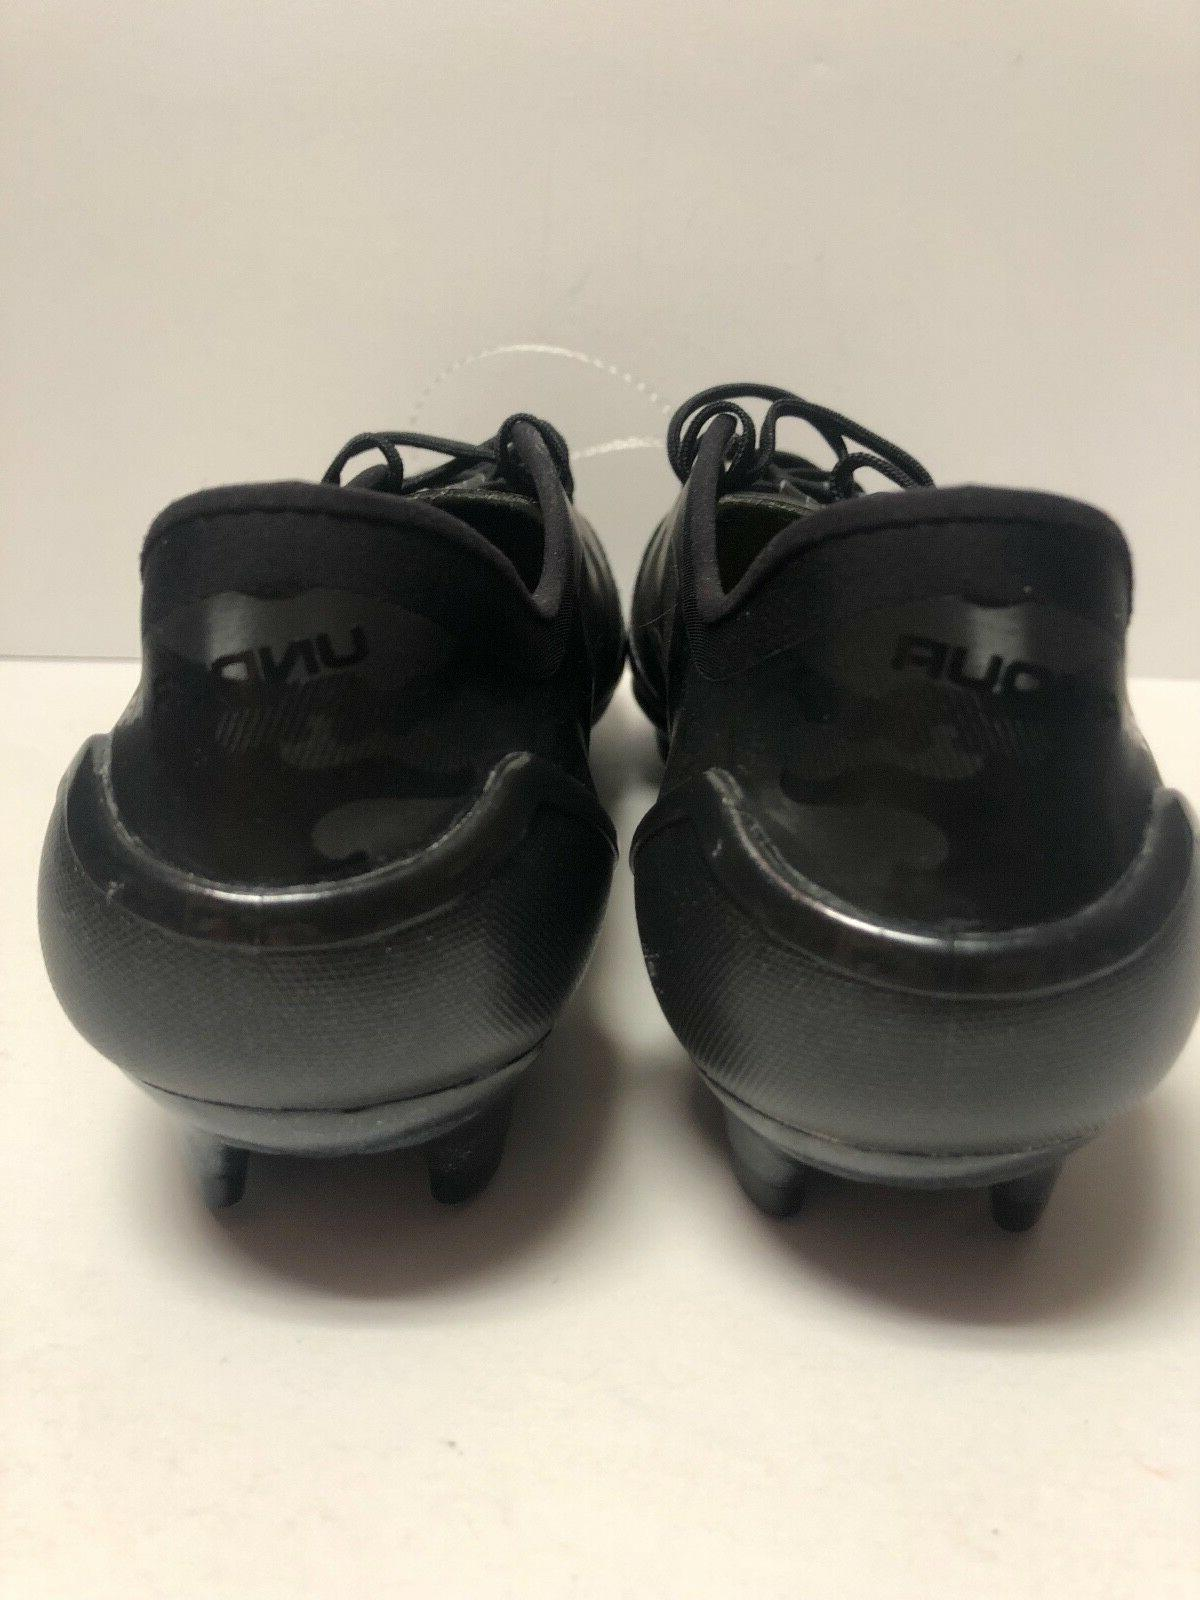 Under Armour FG Limited Edition Black Cleats